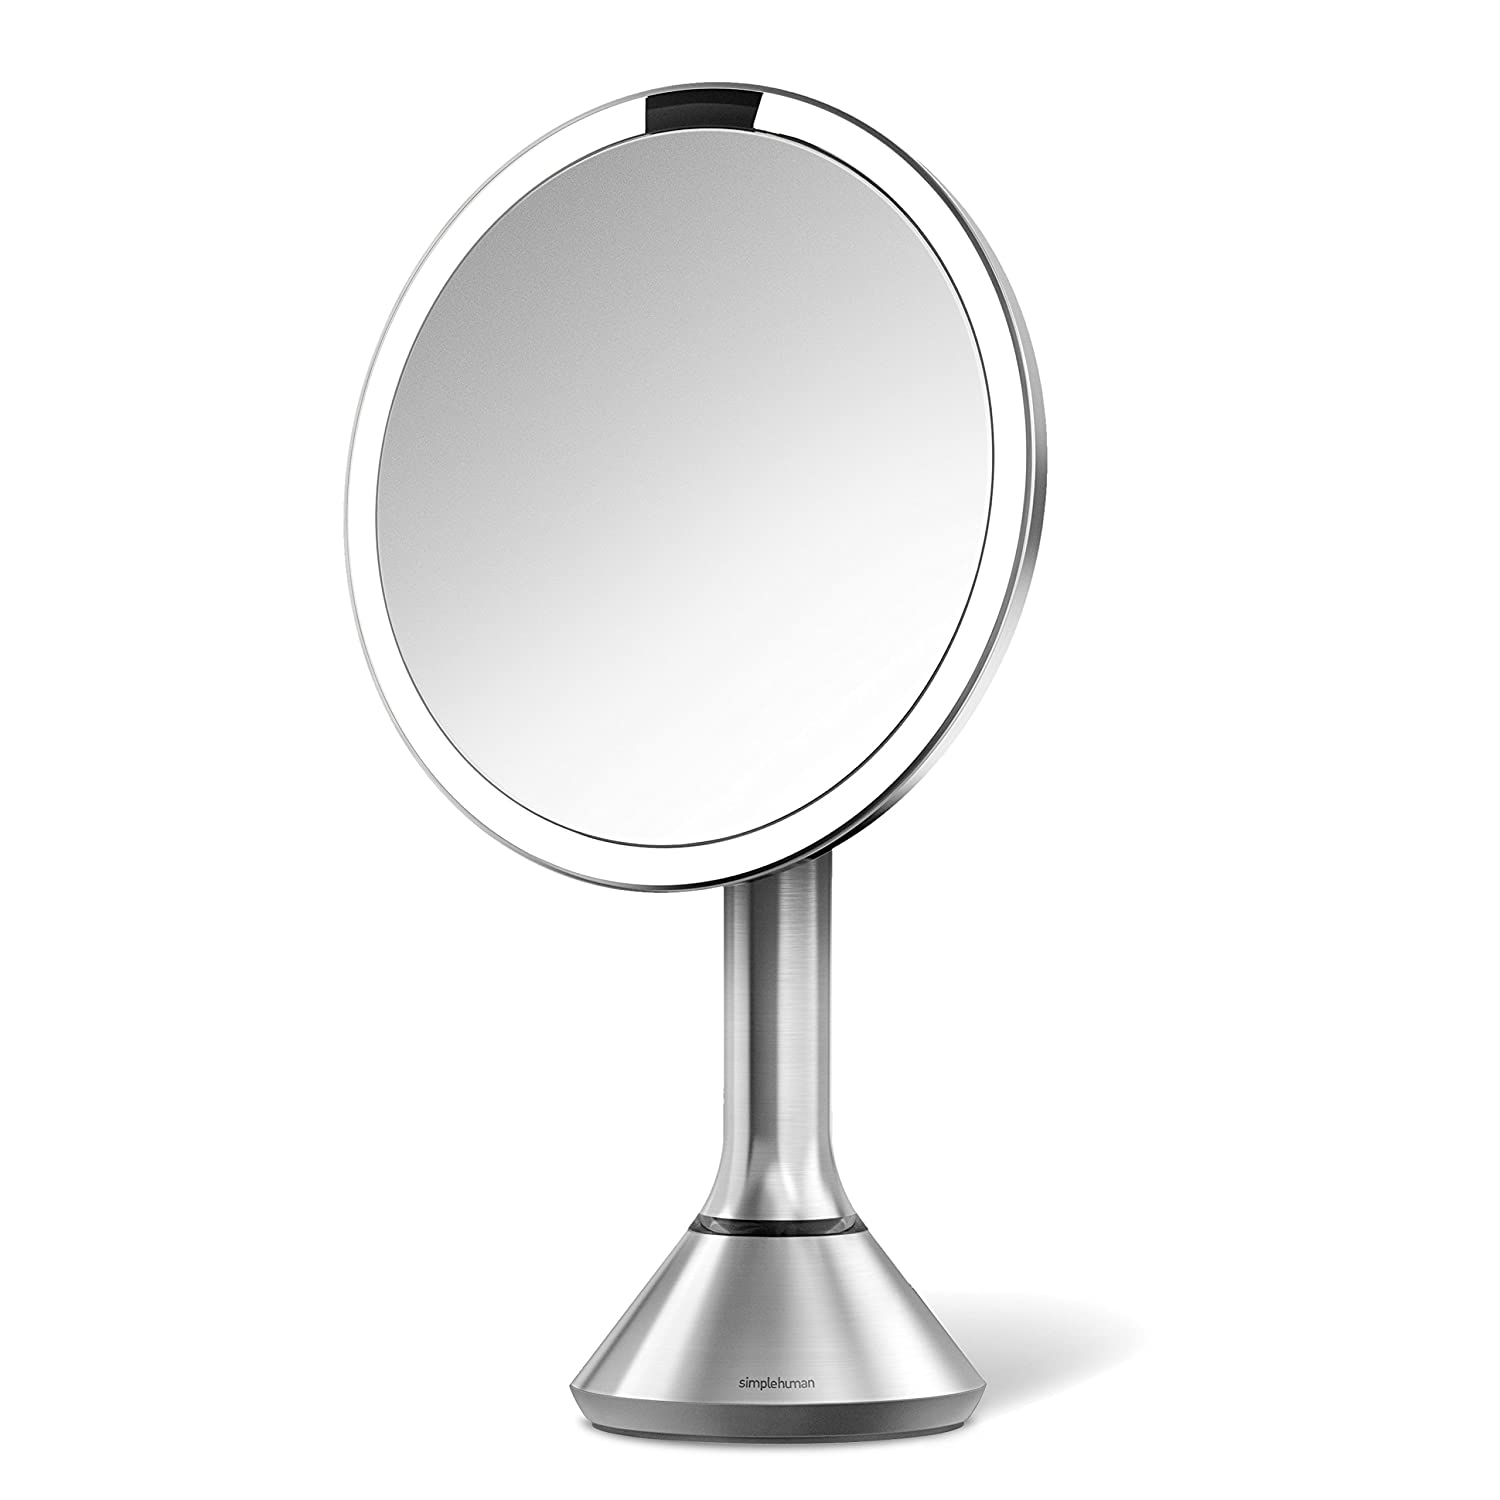 simplehuman 8 Inch Sensor Mirror, Sensor-Activated Lighted Vanity Mirror, 5x Magnification